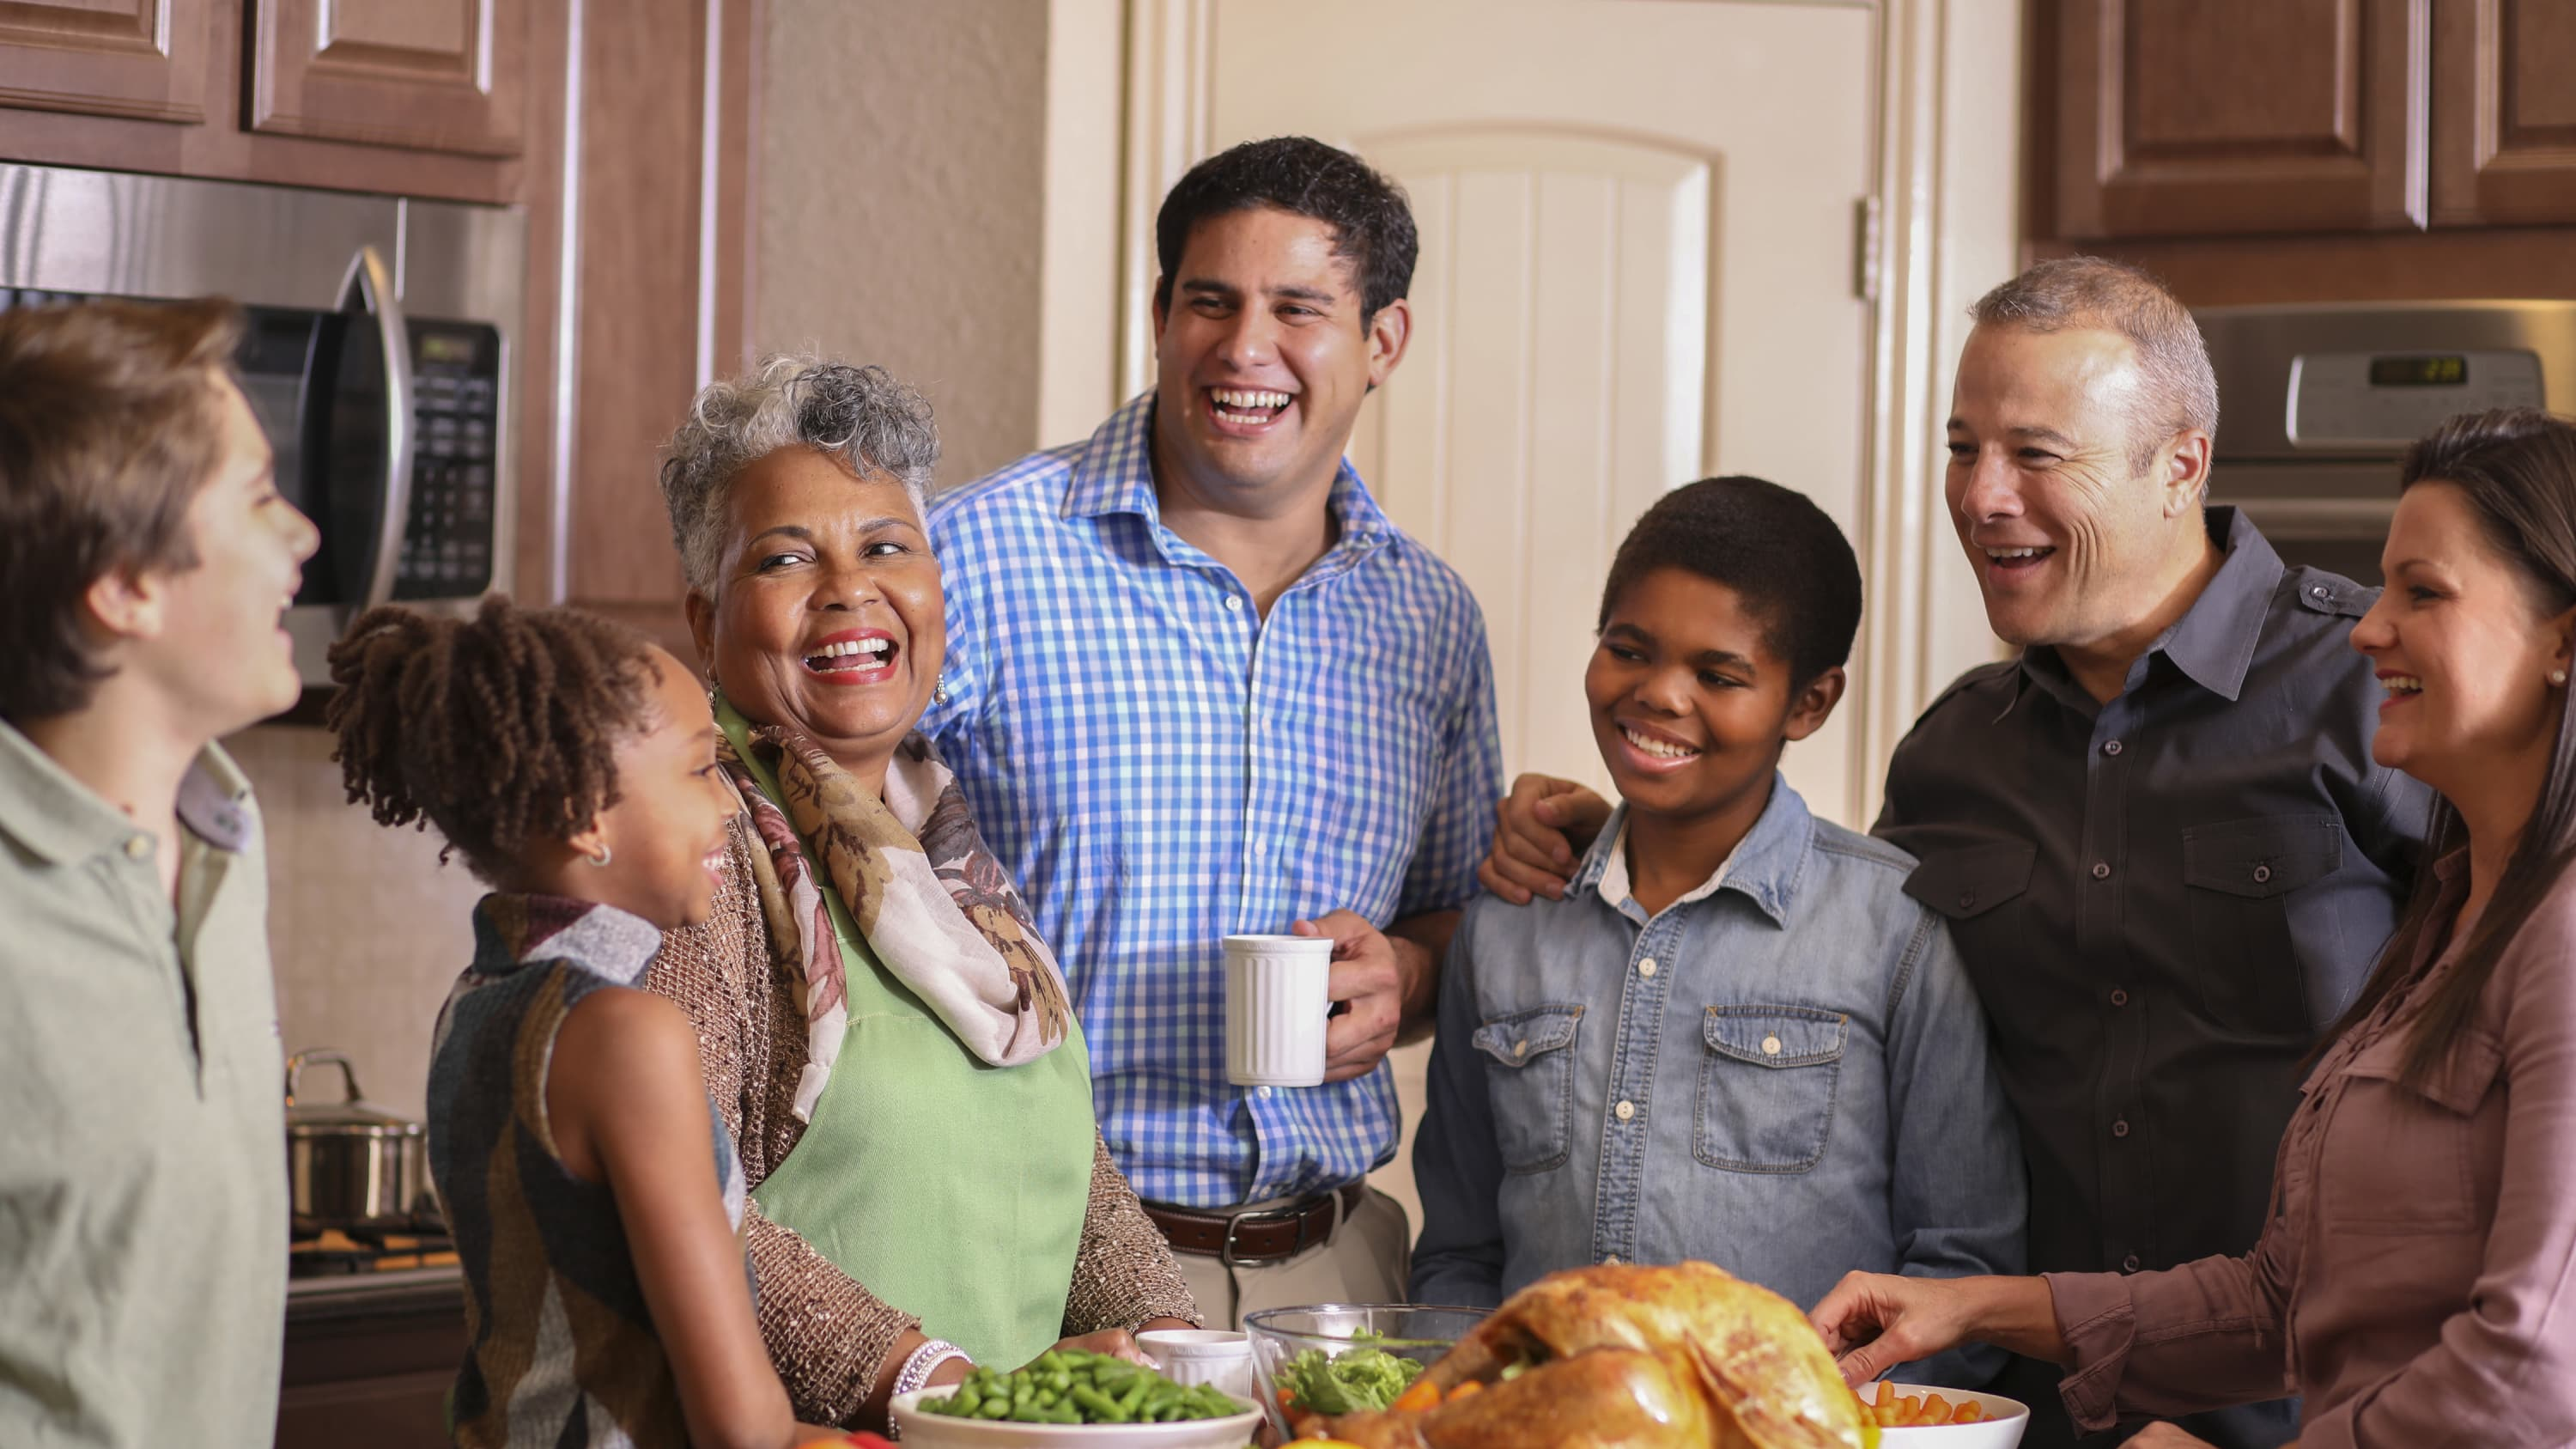 A family gathering, a good time to talk about inherited cancers